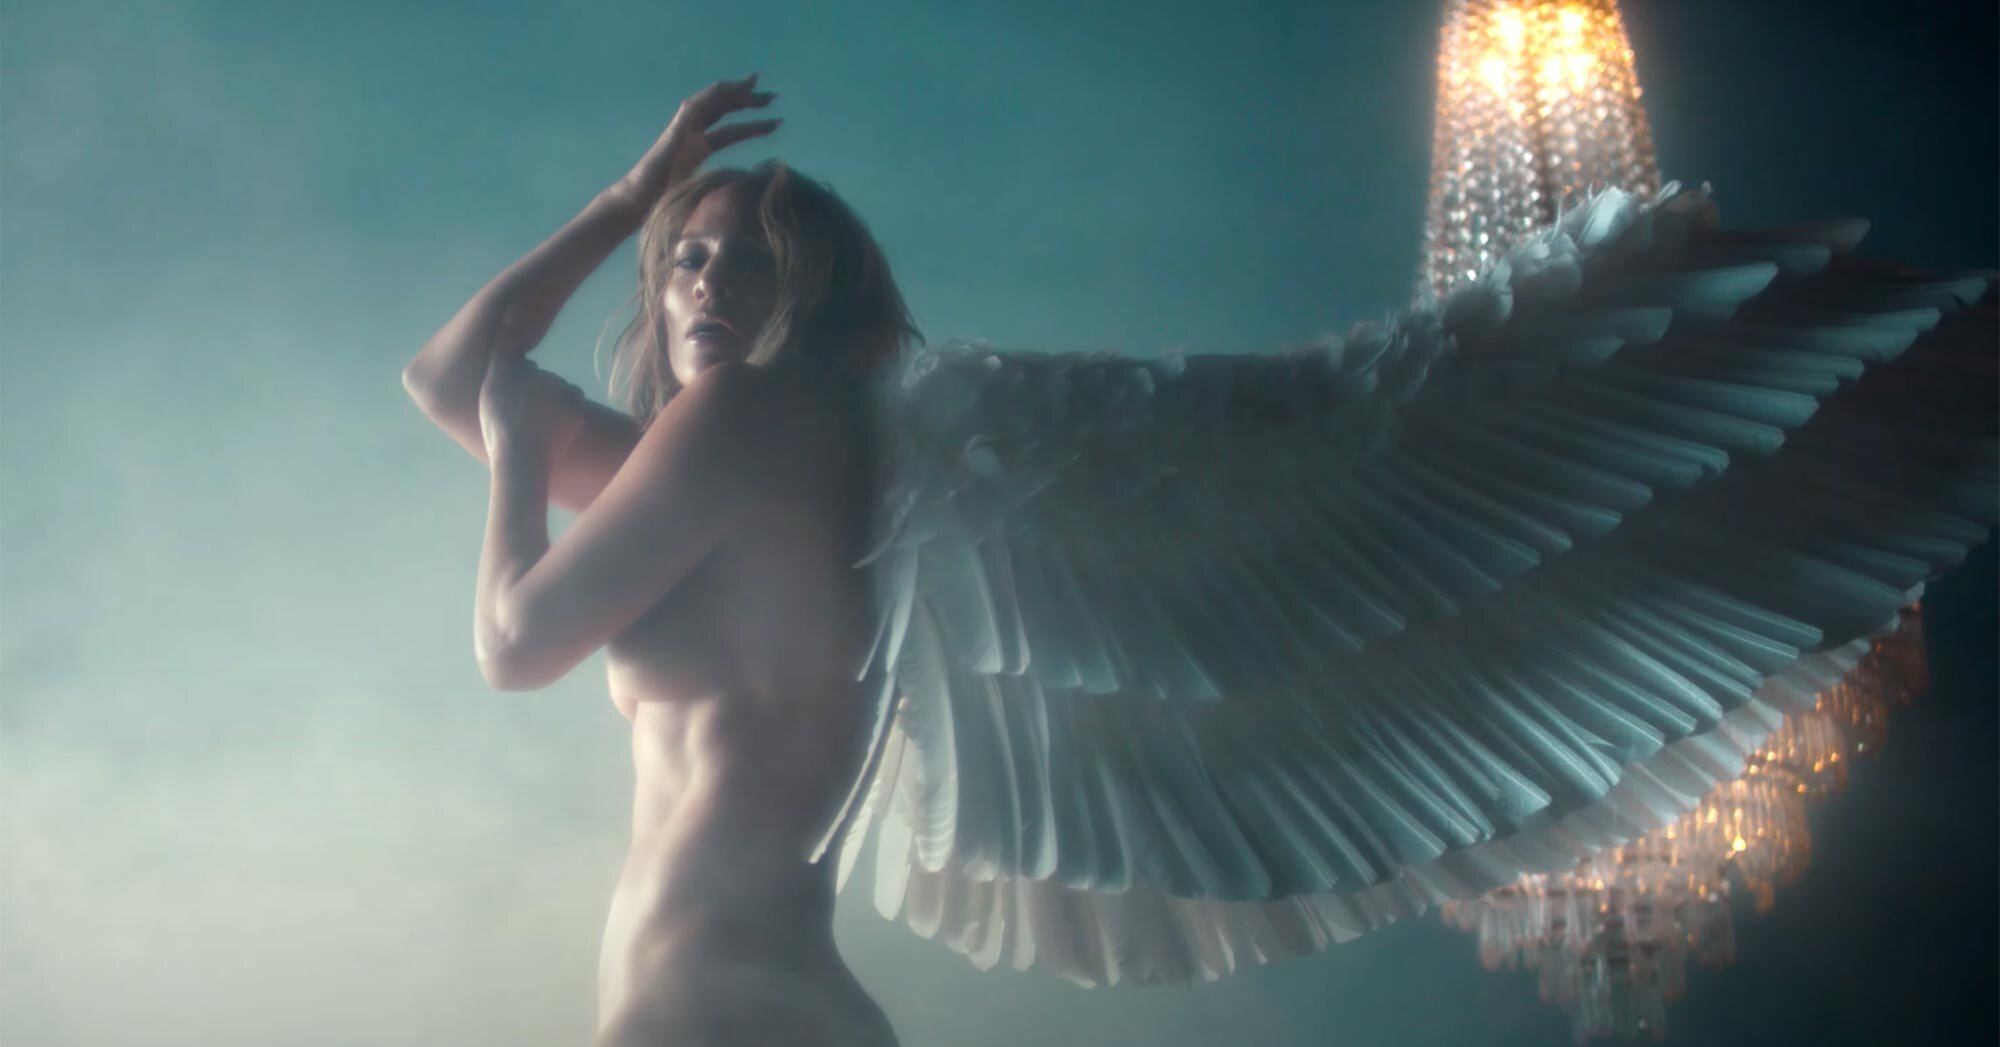 Sexy angels and mermaids abound in Jennifer Lopez's 'In the Morning' video.jpg